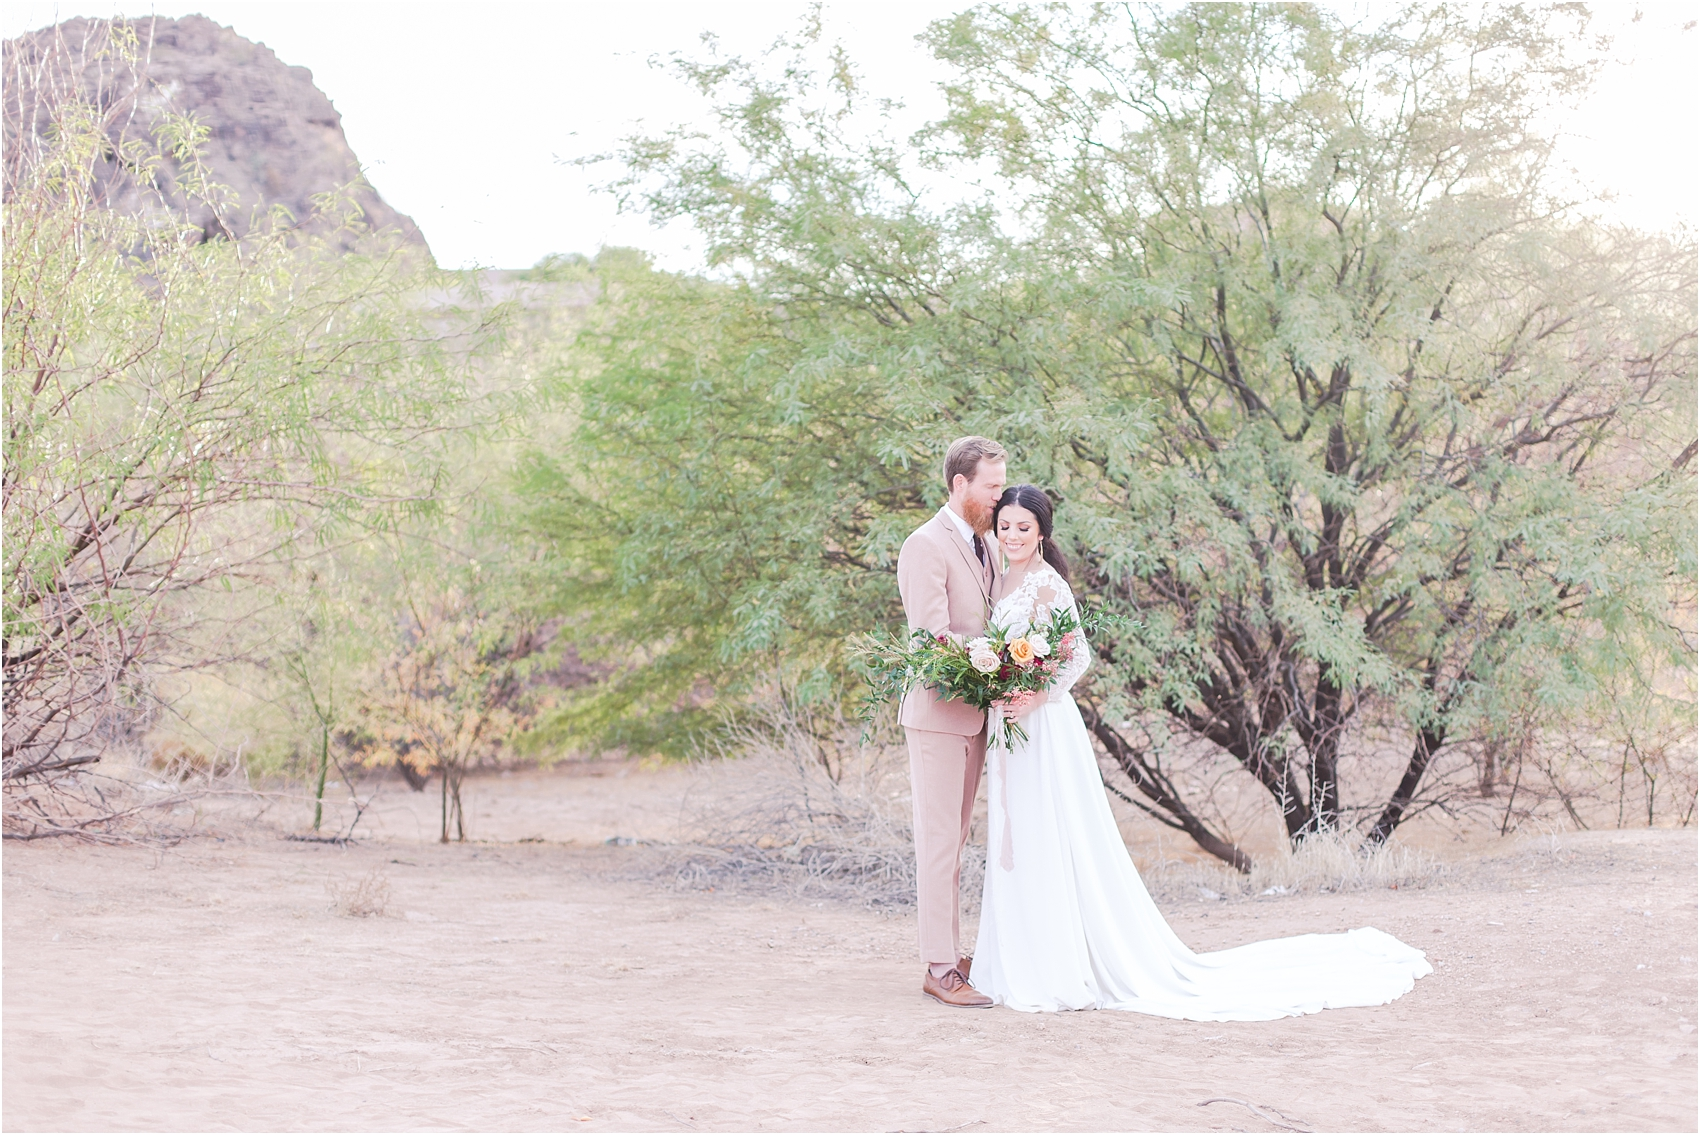 intimate-and-romantic-desert-wedding-photos-at-phoenix-marriott-tempe-at-the-buttes-in-tempe-arizona-by-courtney-carolyn-photography_0003.jpg